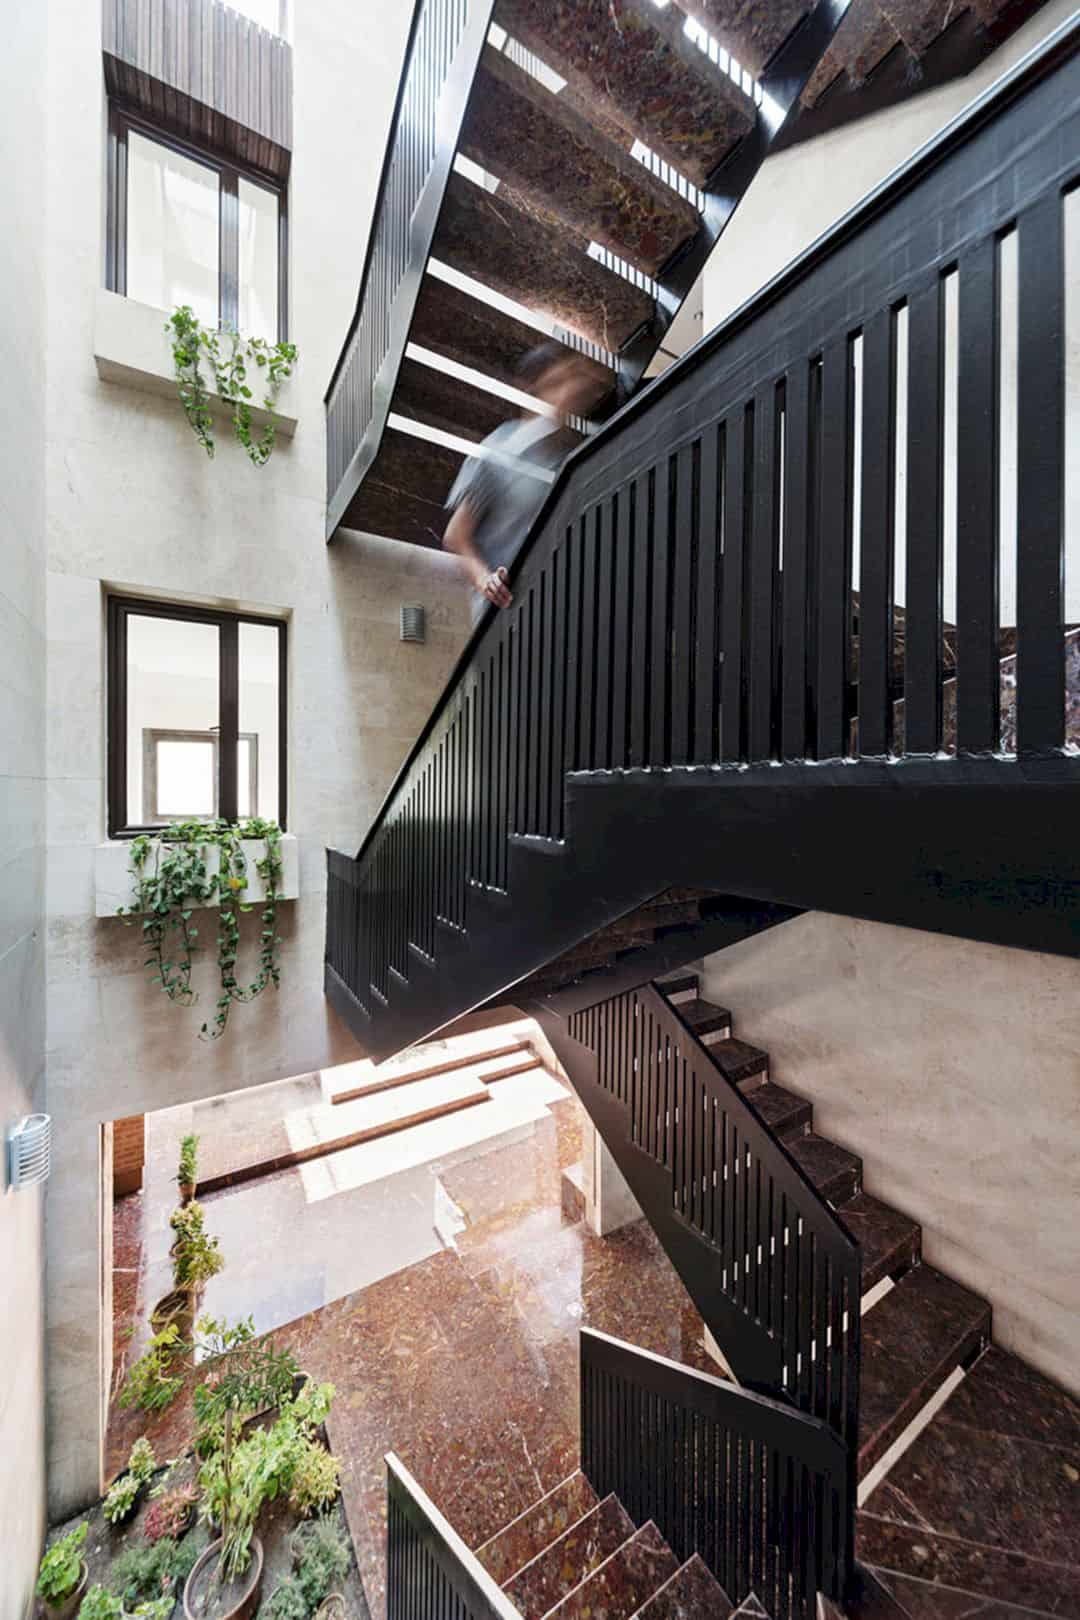 Farvardin House A Living Place With Green Spaces 4